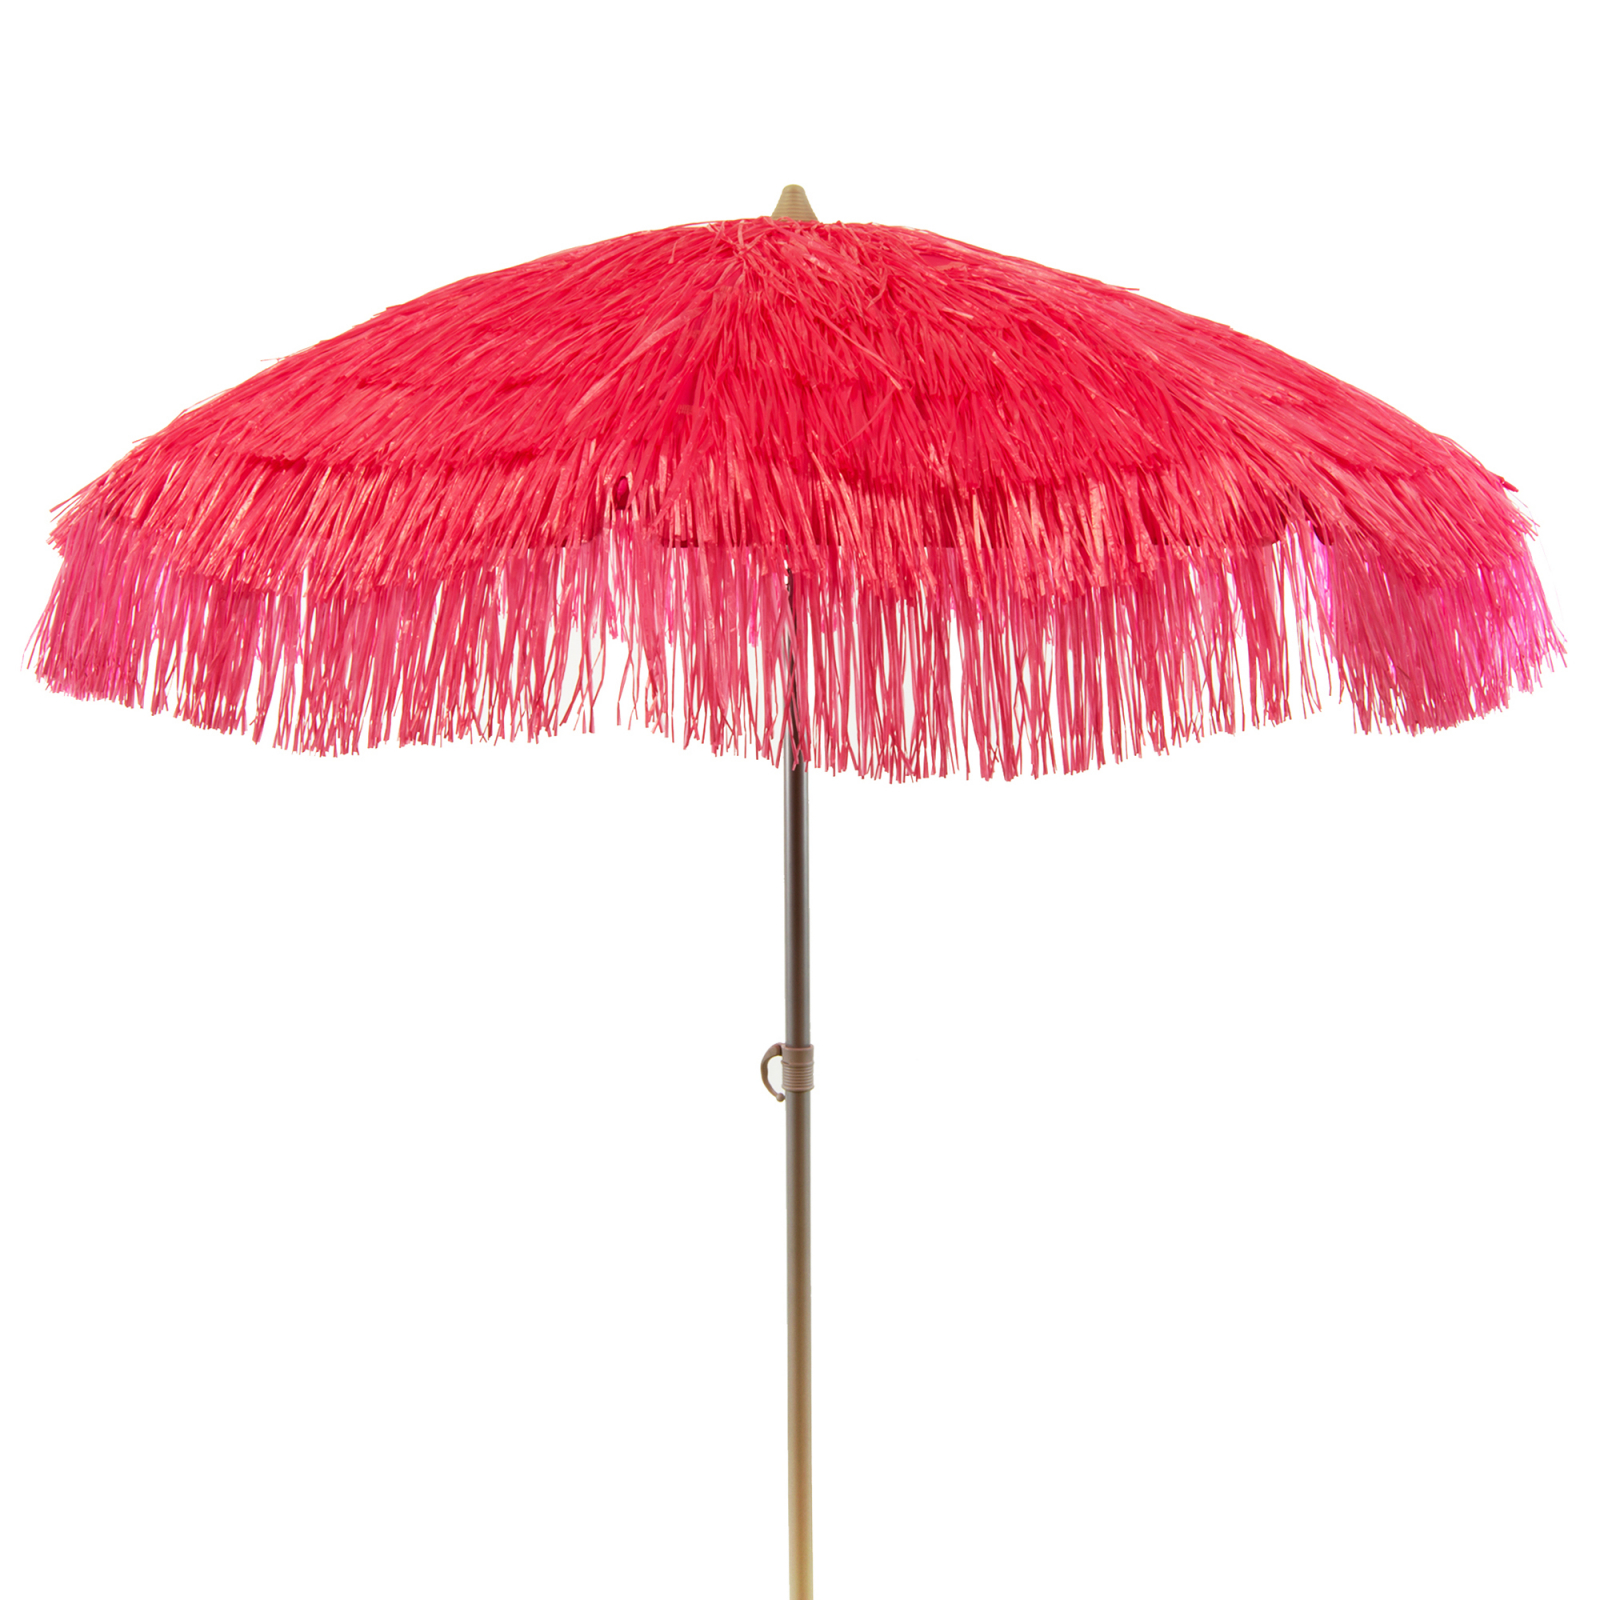 DestinationGear Palapa Tiki Patio Umbrella 6ft Pink Color